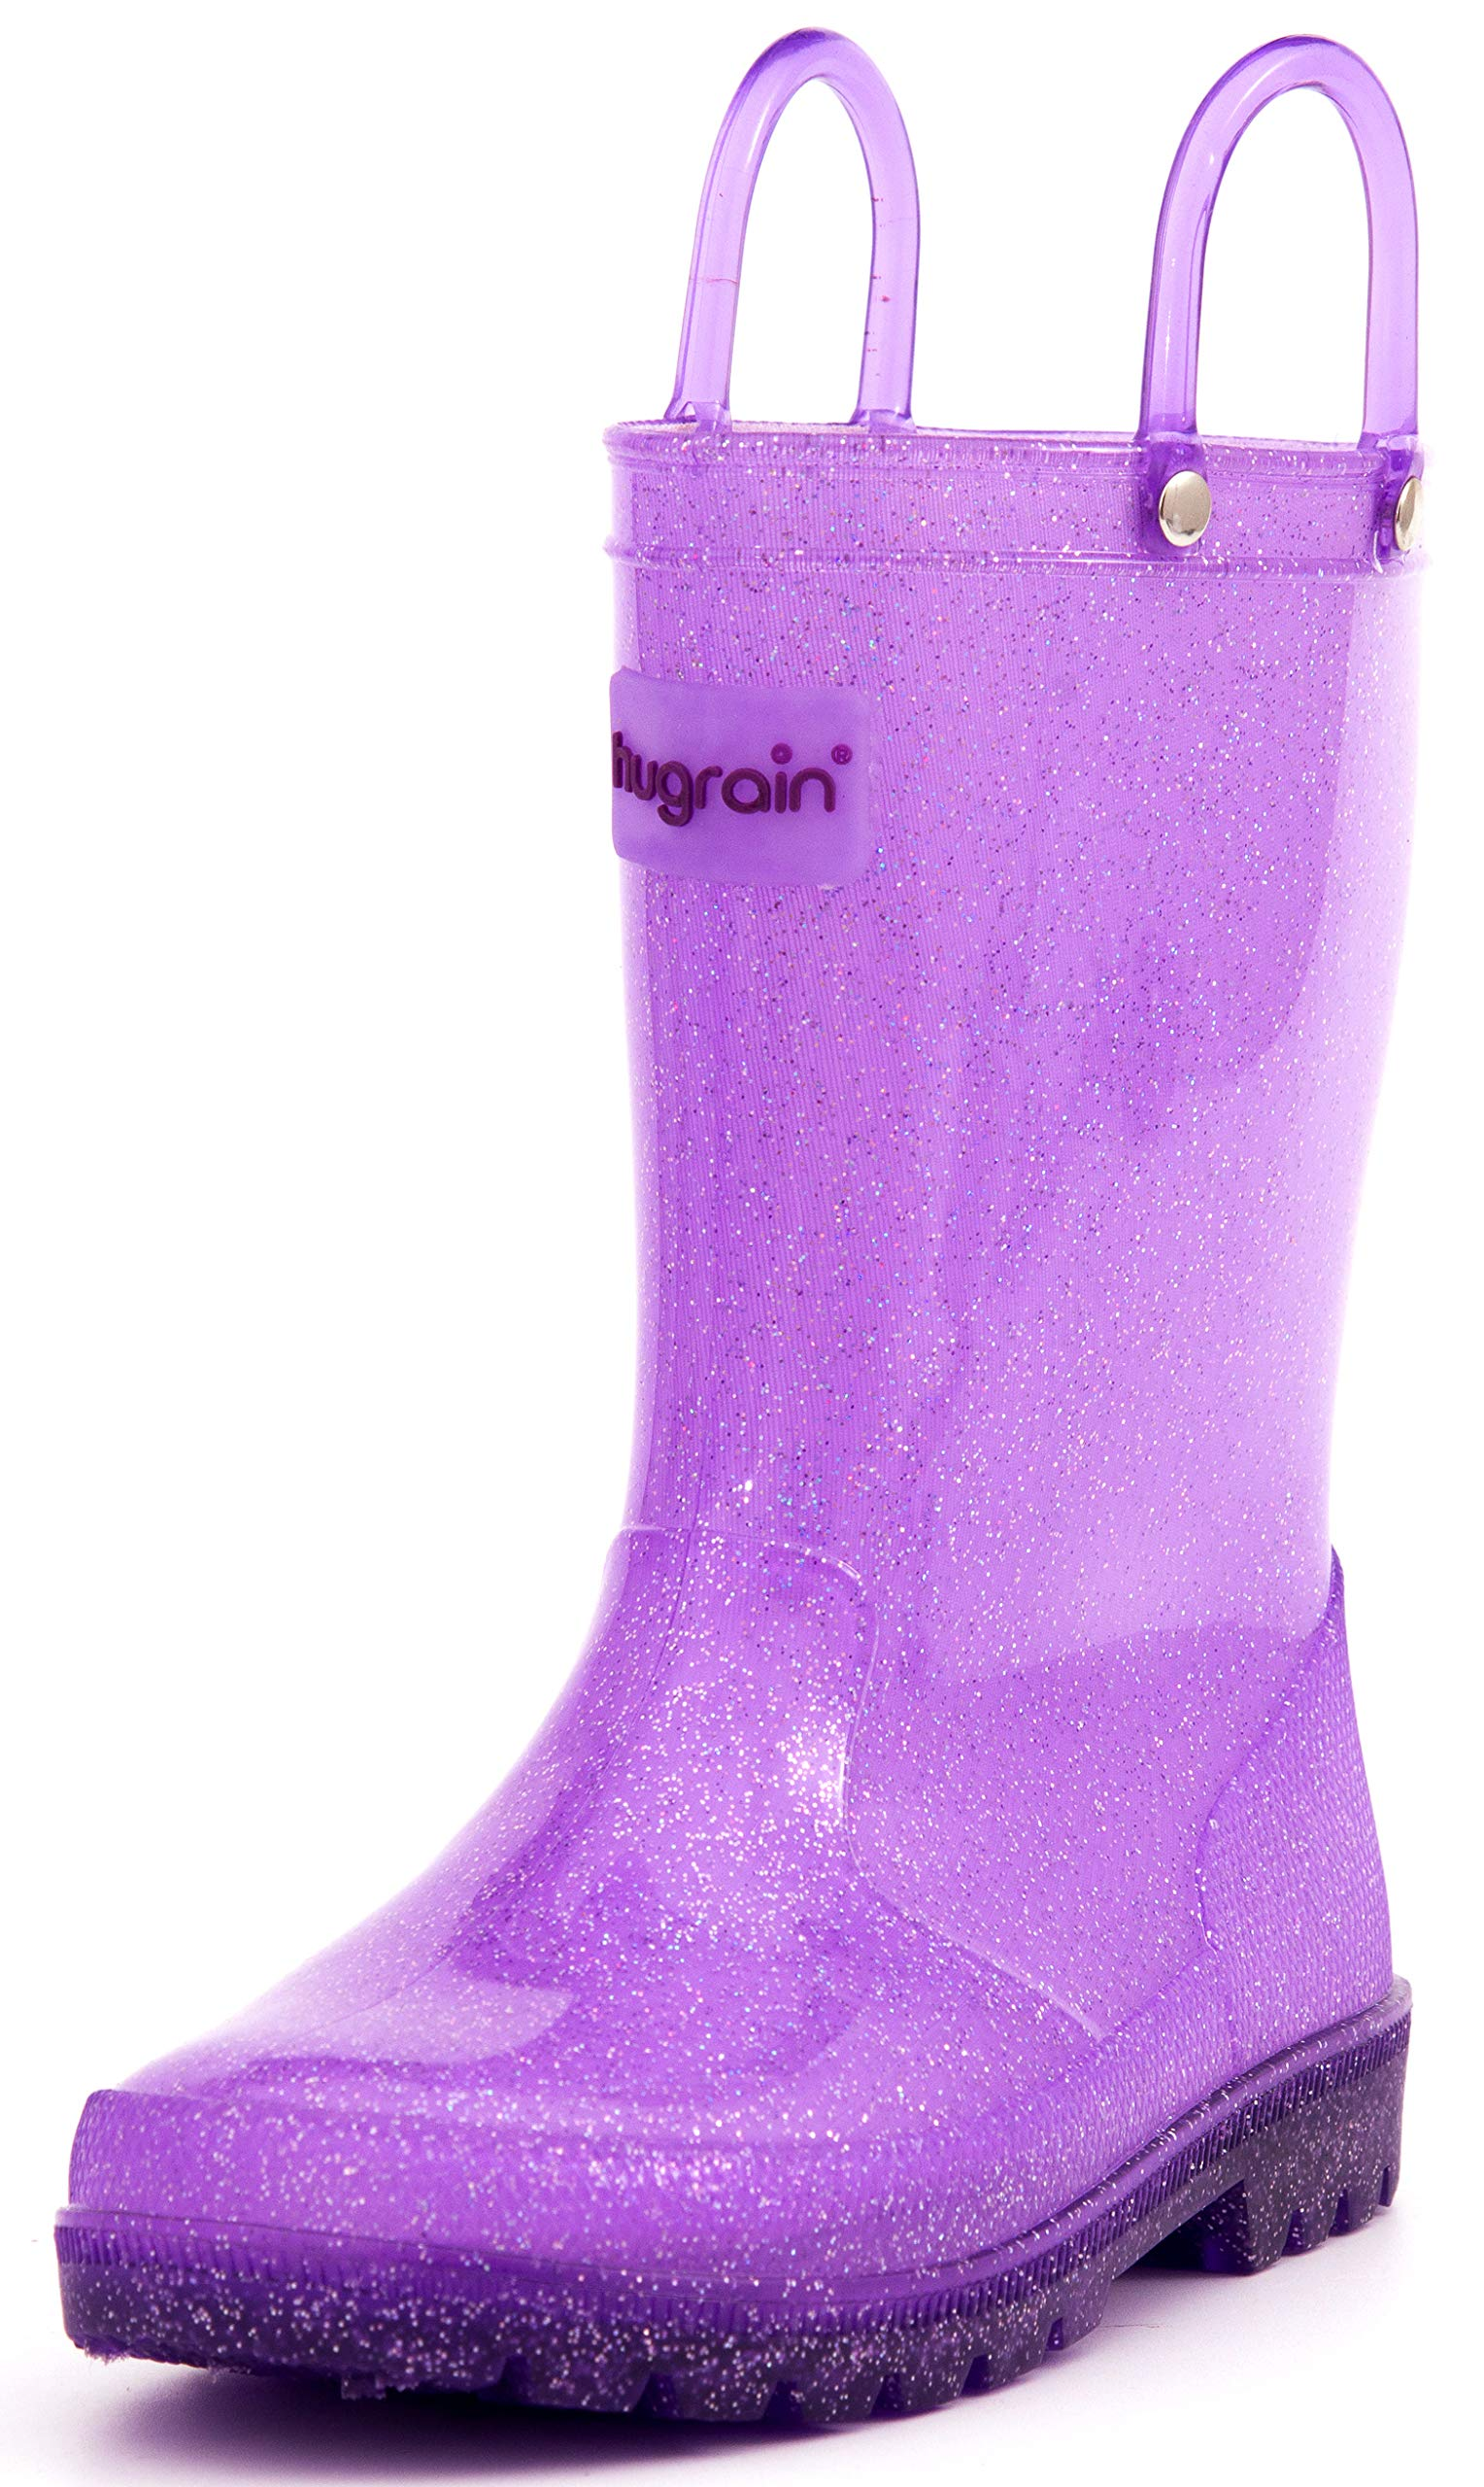 HugRain Toddler Girls Kids Rain Boots Light up Waterproof Shoes Glitter Lightweight (Size 10, Purple)